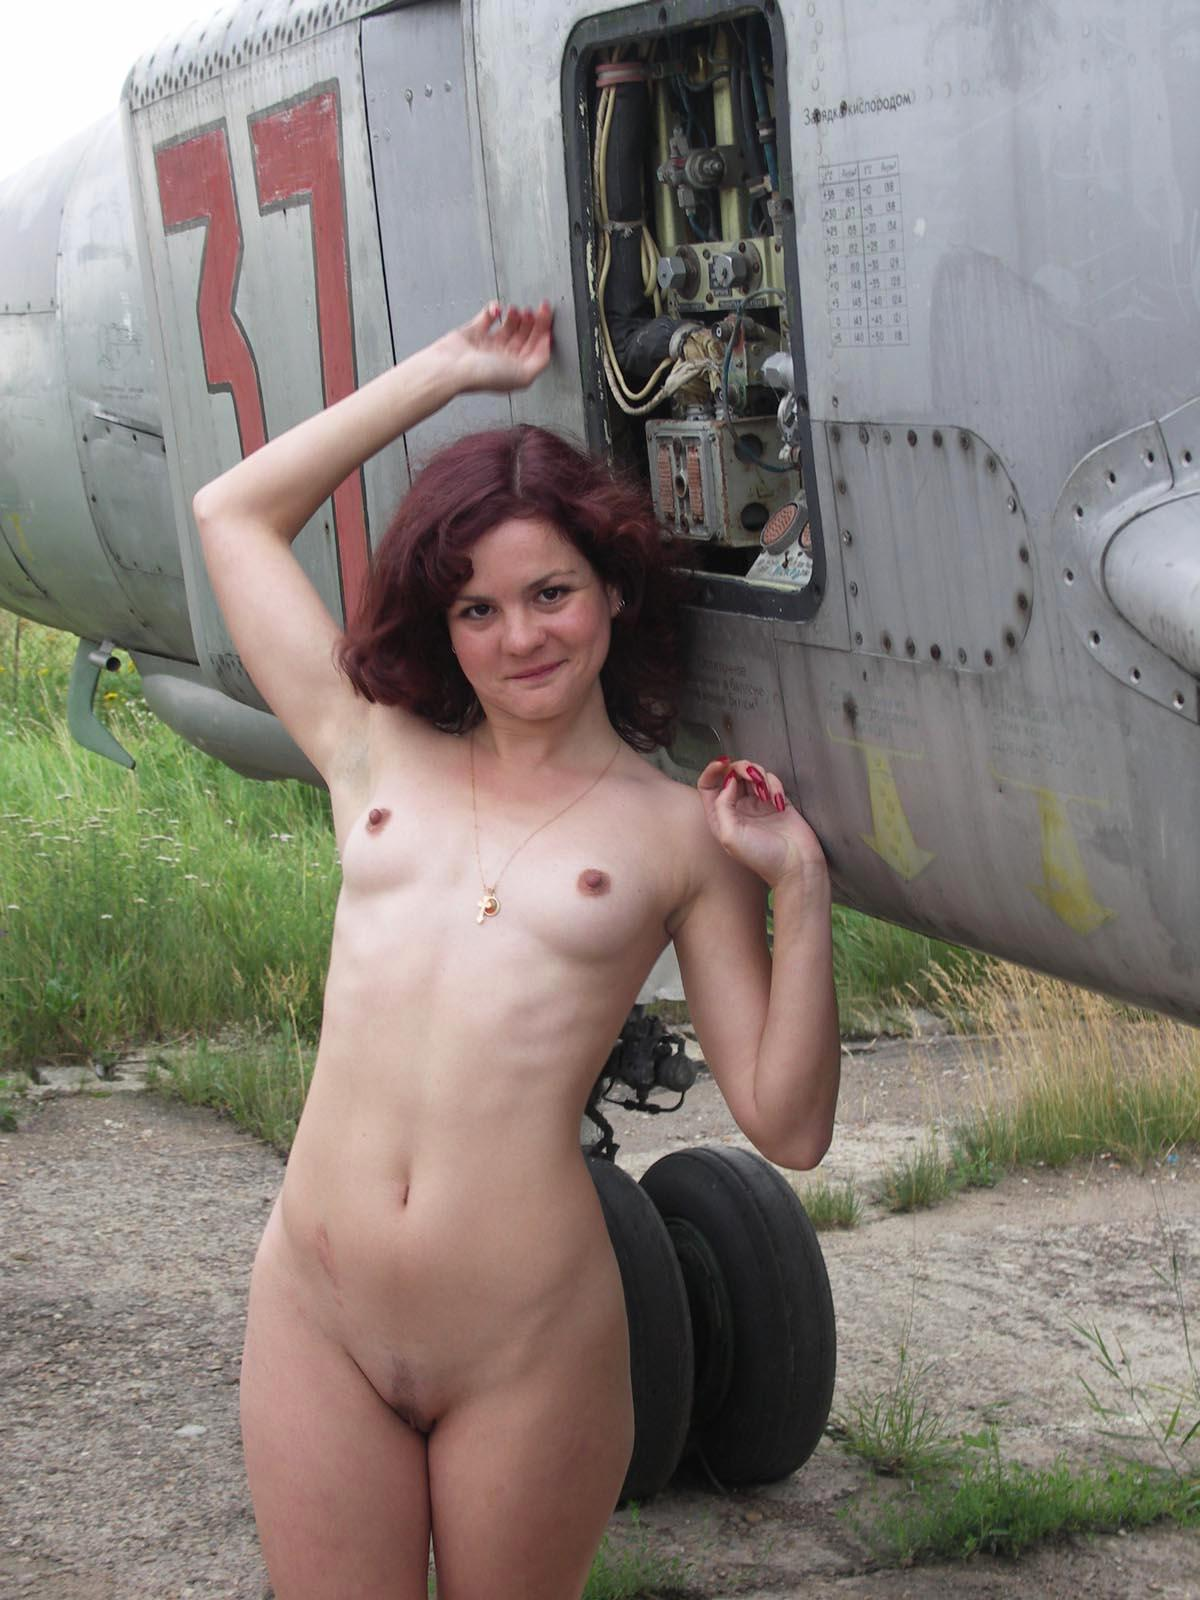 Girls naked in cockpit